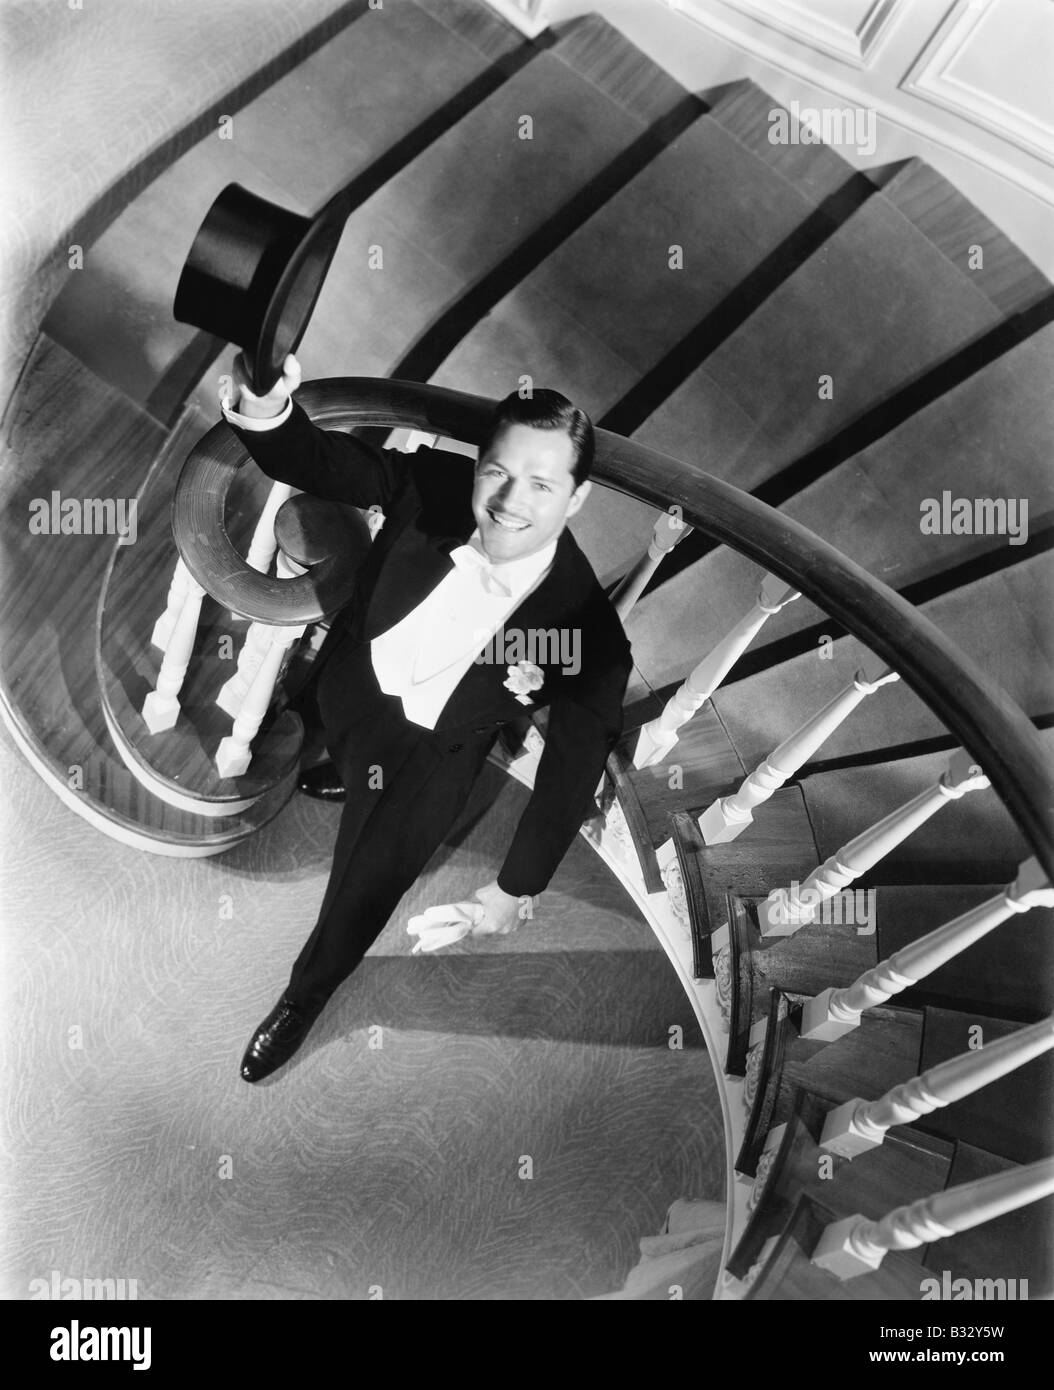 Elegant man looking up from the bottom of a staircase - Stock Image